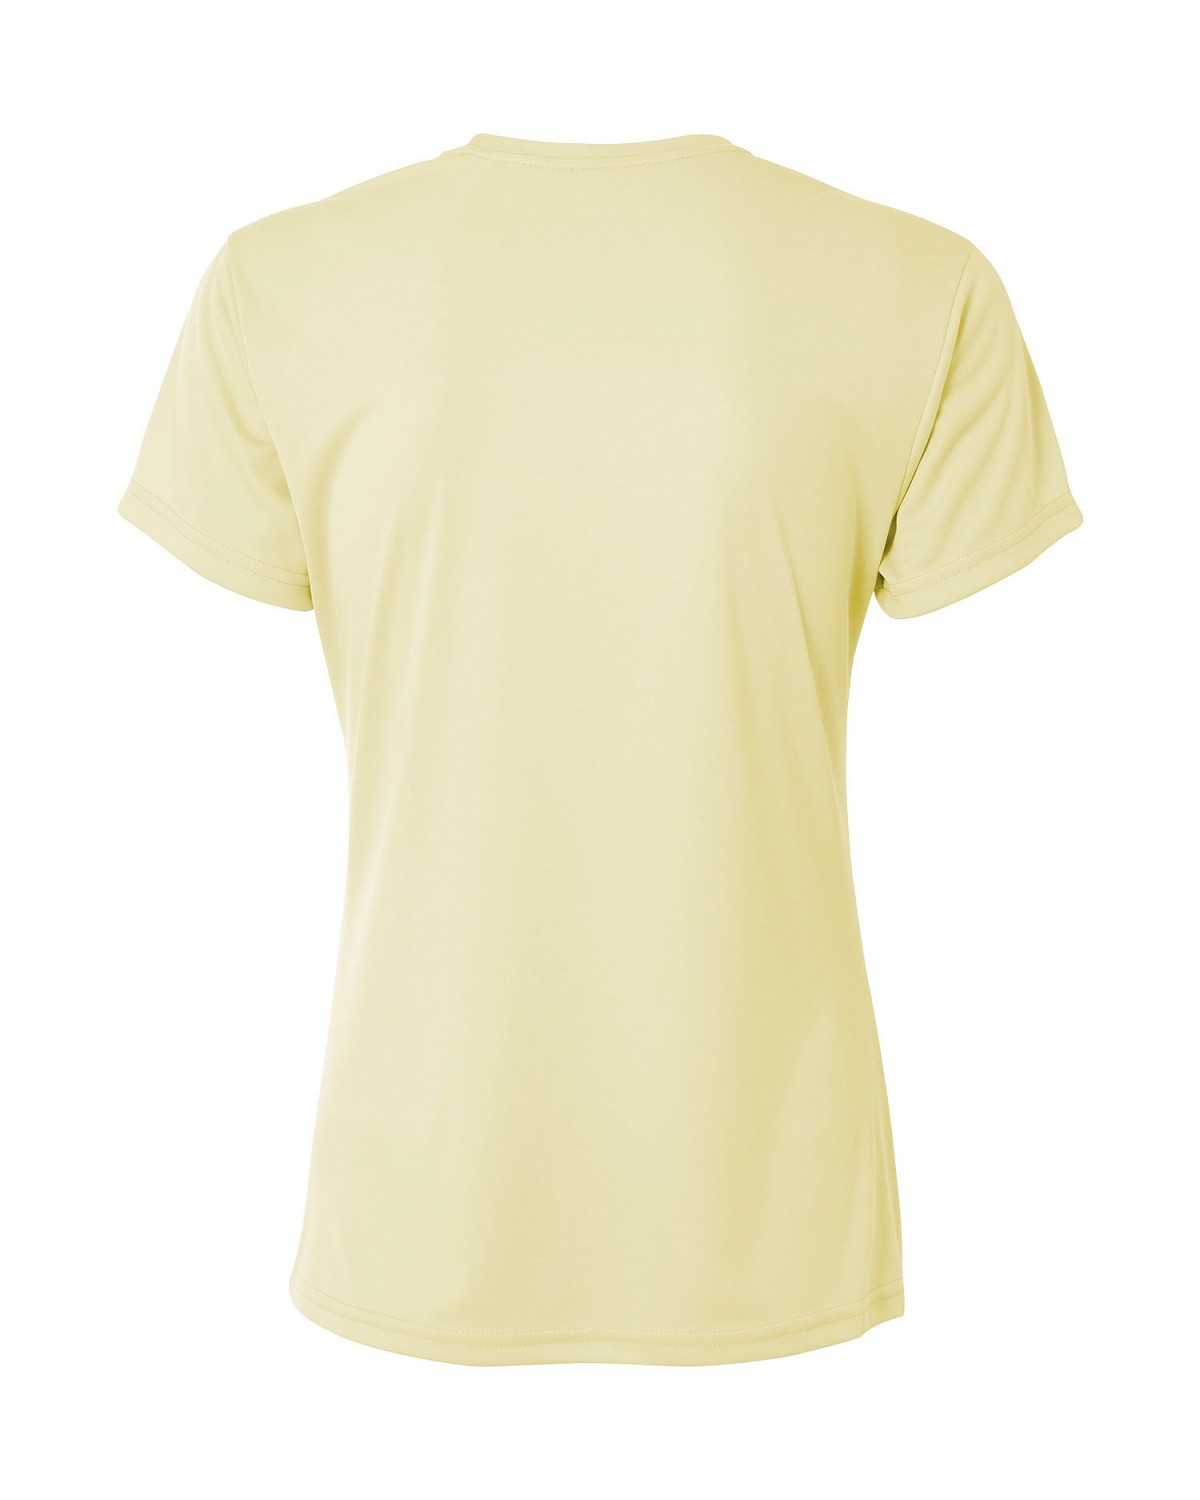 A4NW3201 A4 LIGHT YELLOW